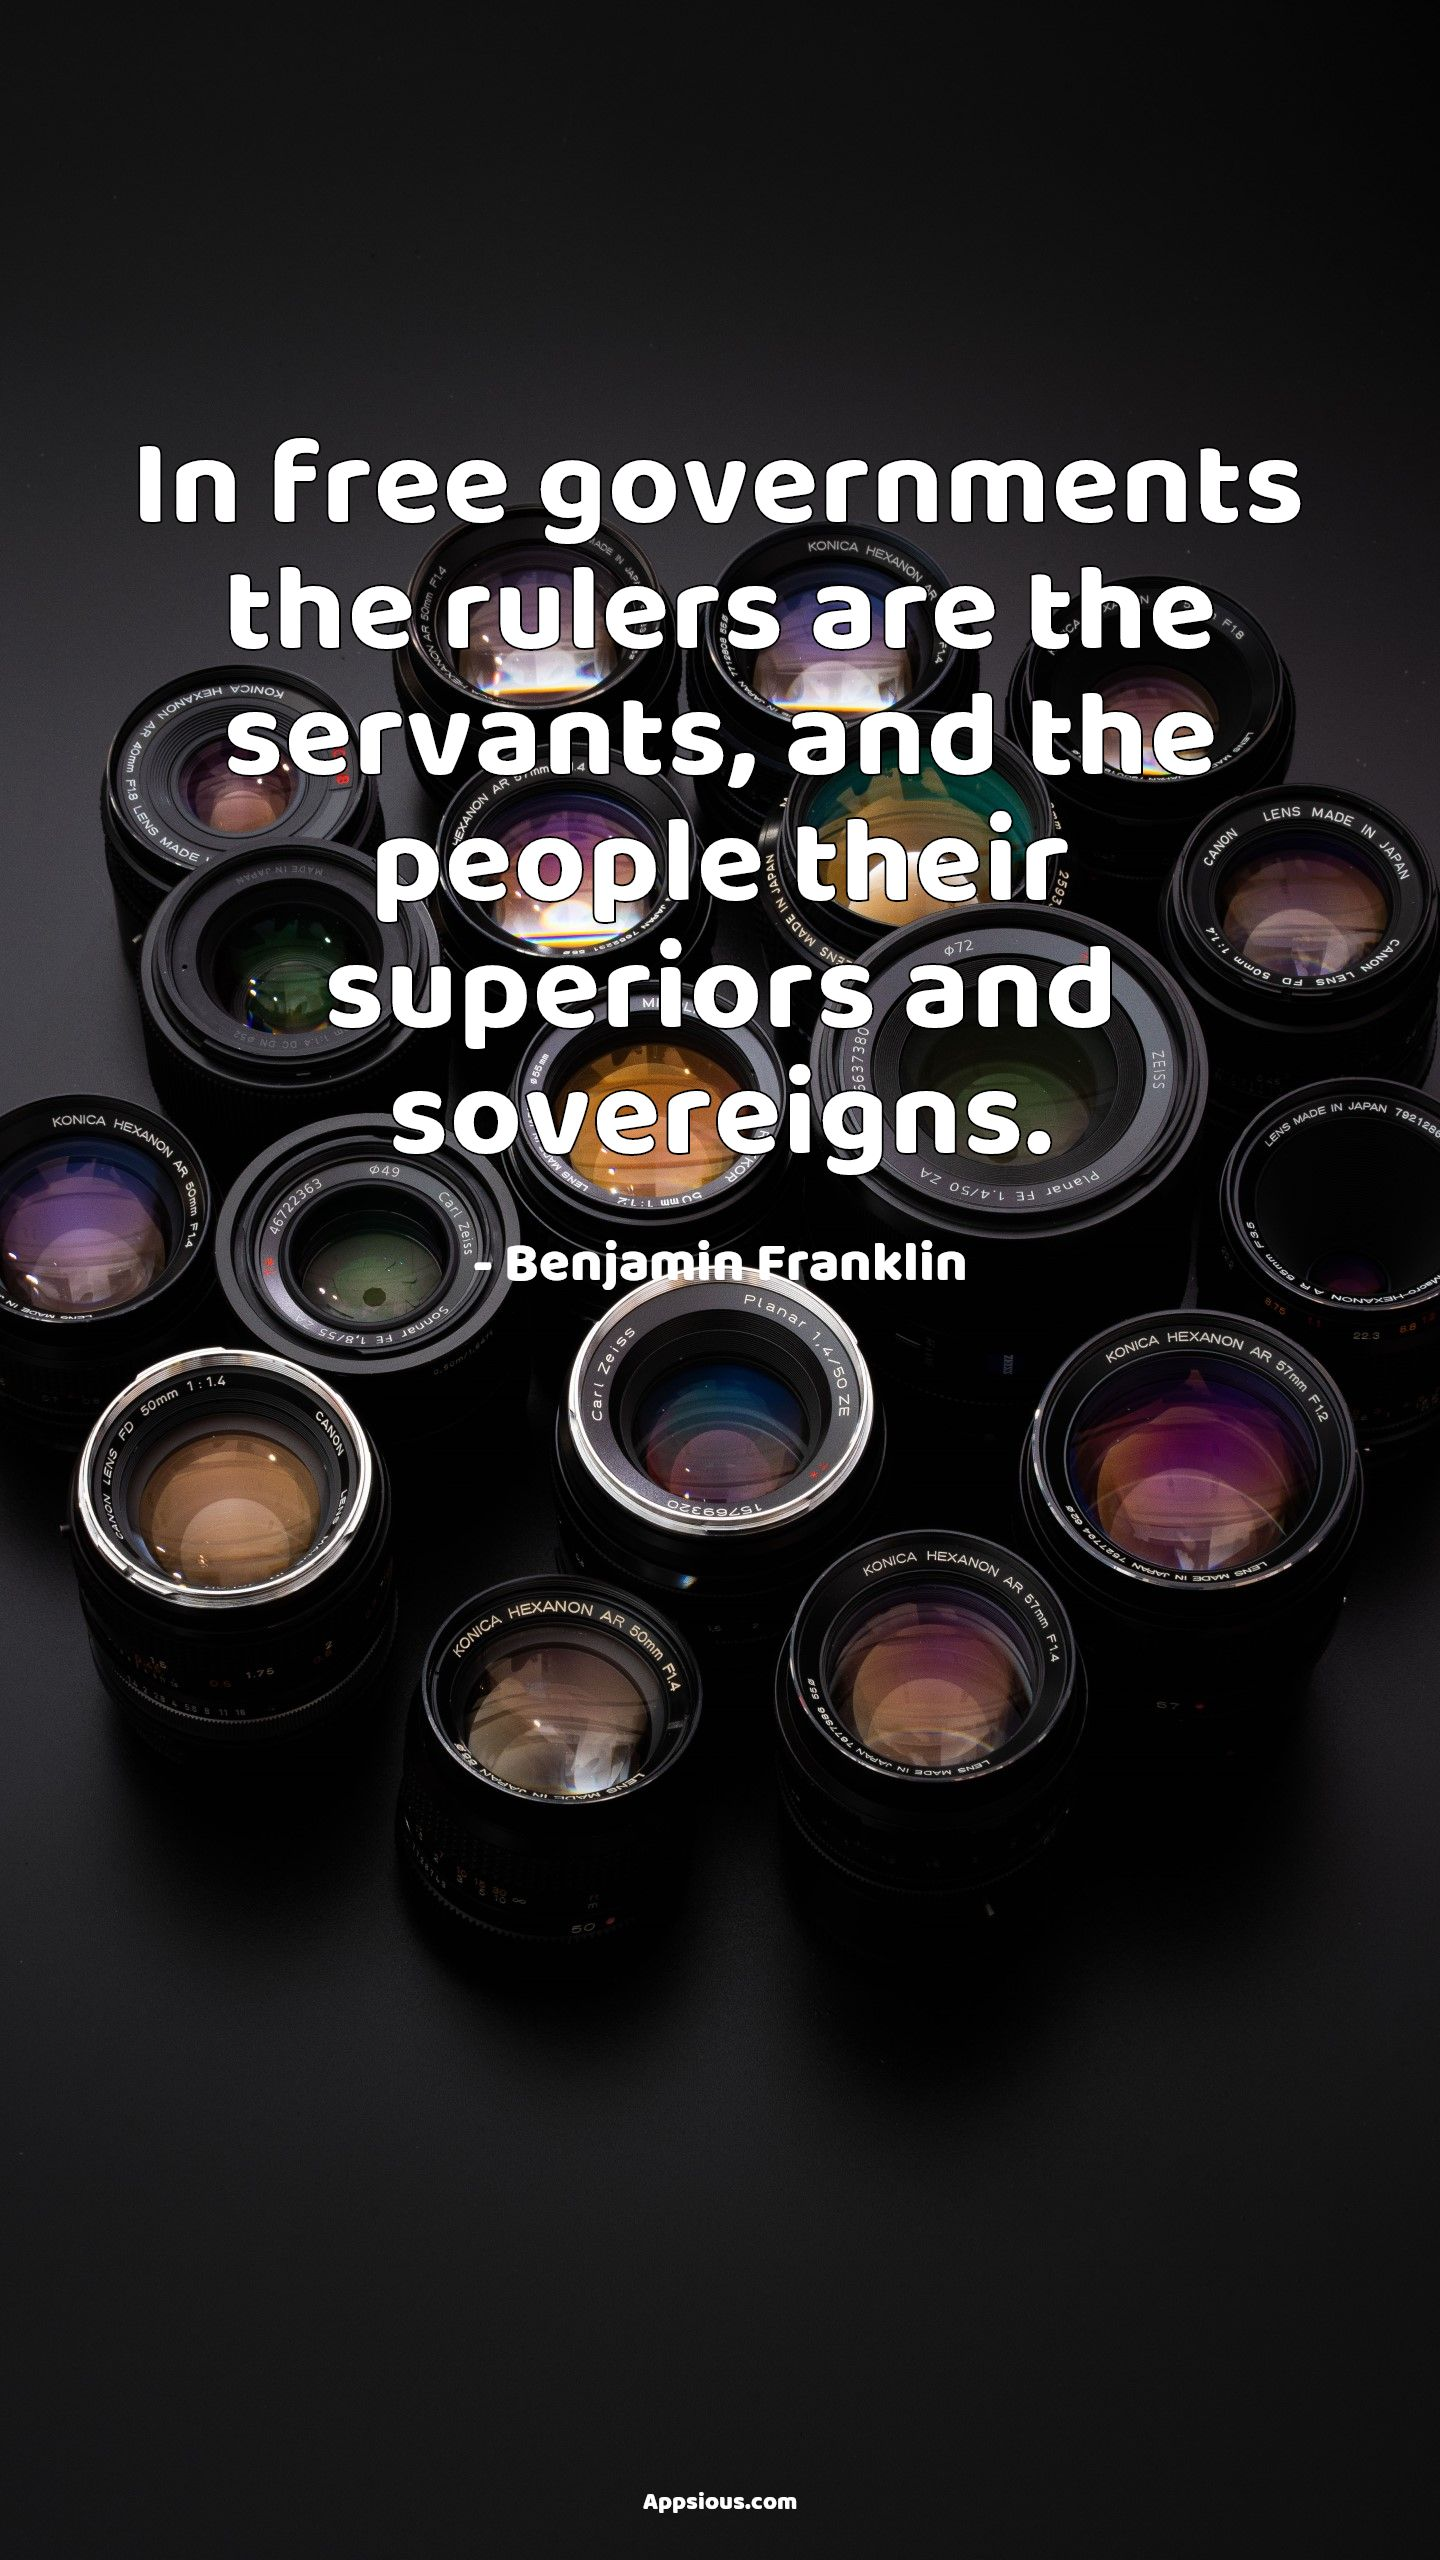 In free governments the rulers are the servants, and the people their superiors and sovereigns.